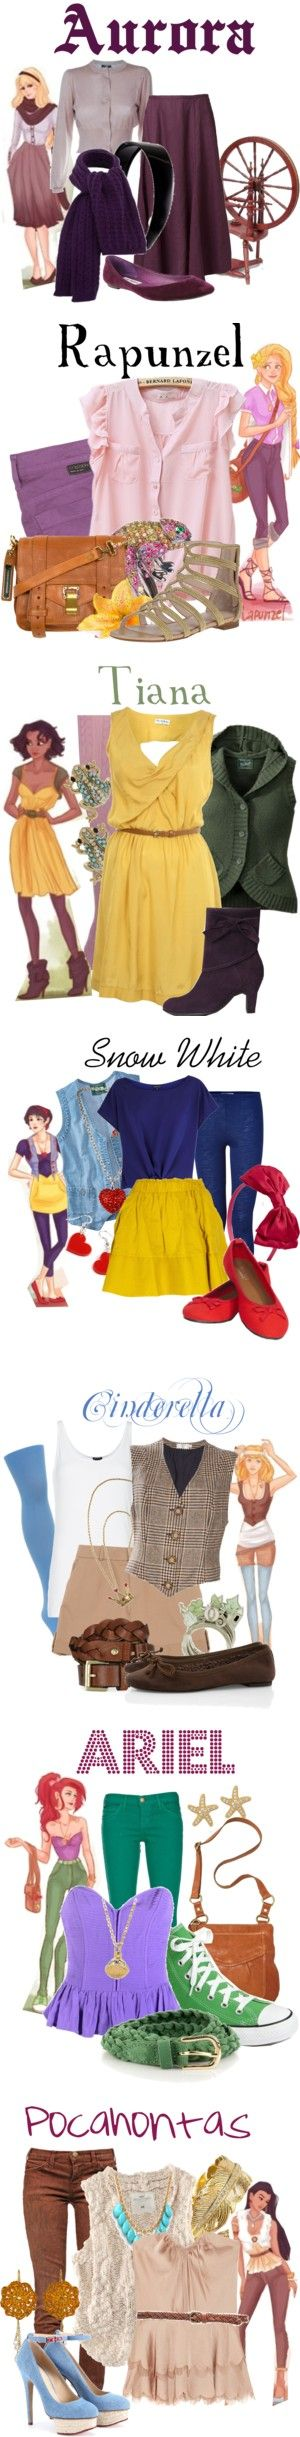 """Hipster Disney Princess Collection"" by agust20 ❤ liked on Polyvore"